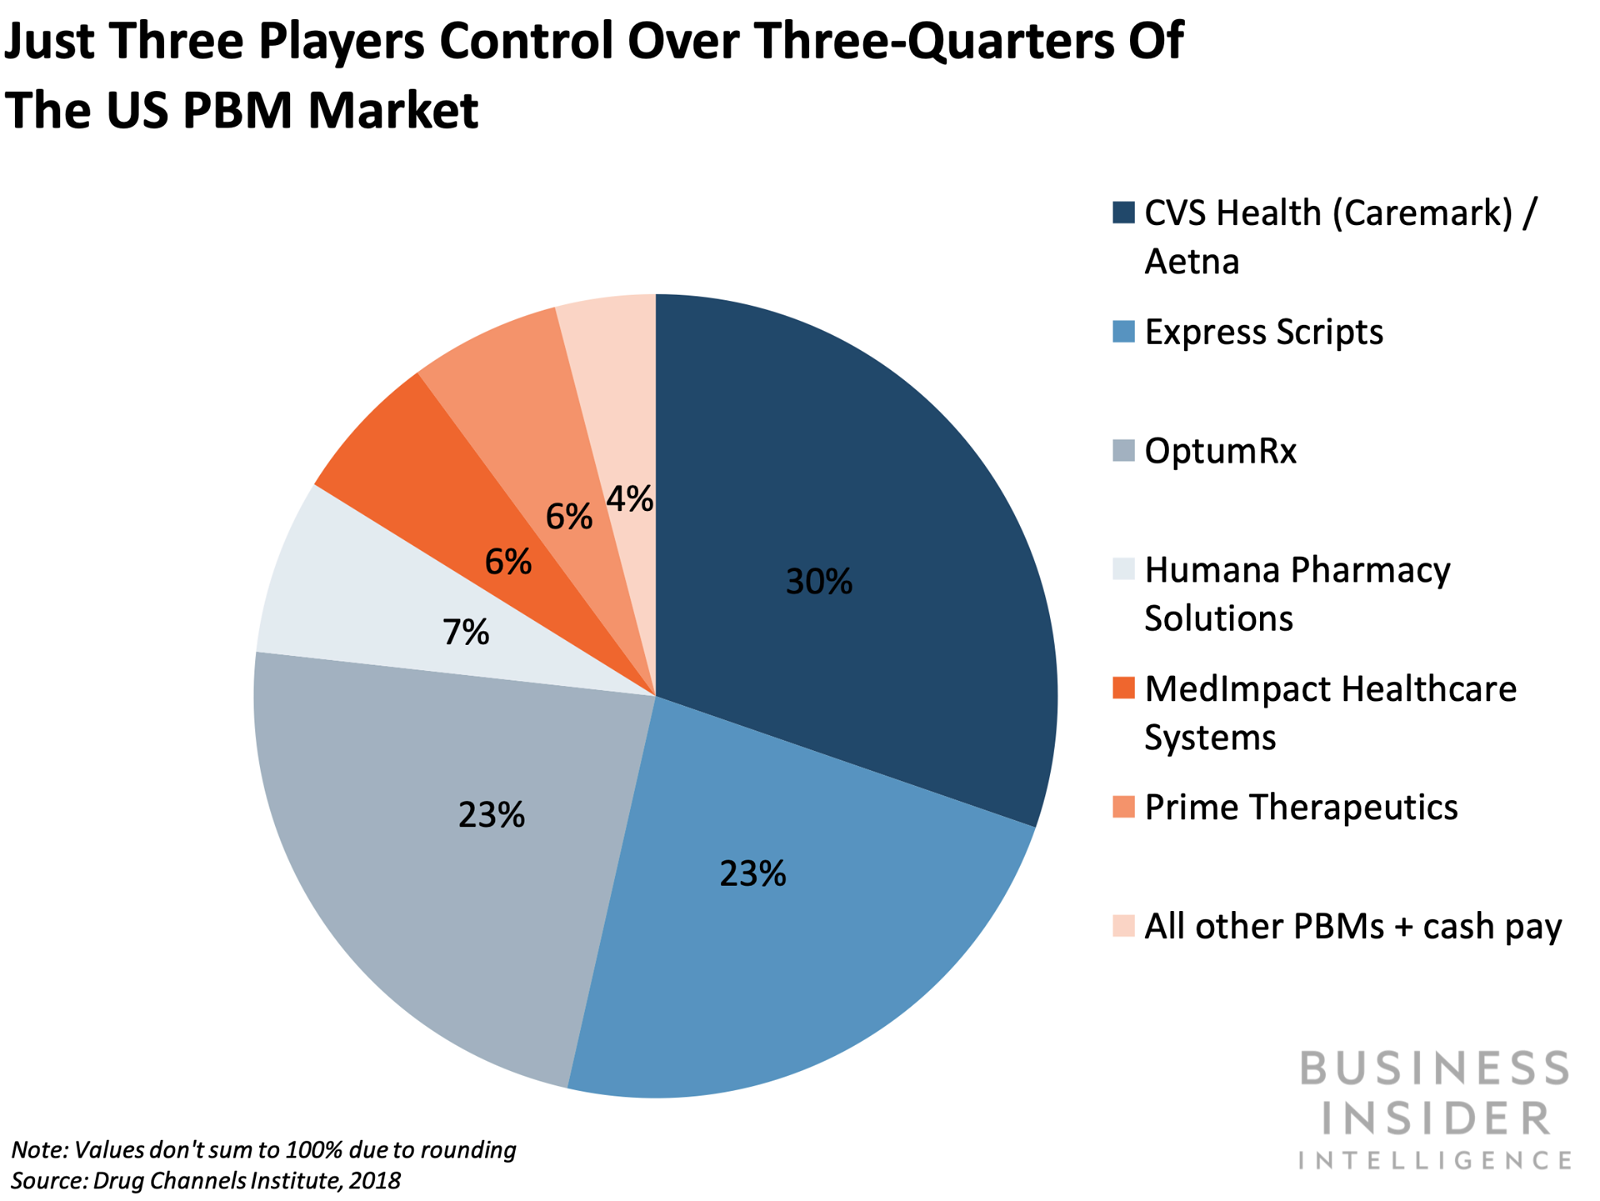 How one startup plans to disrupt the $423 billion PBM market